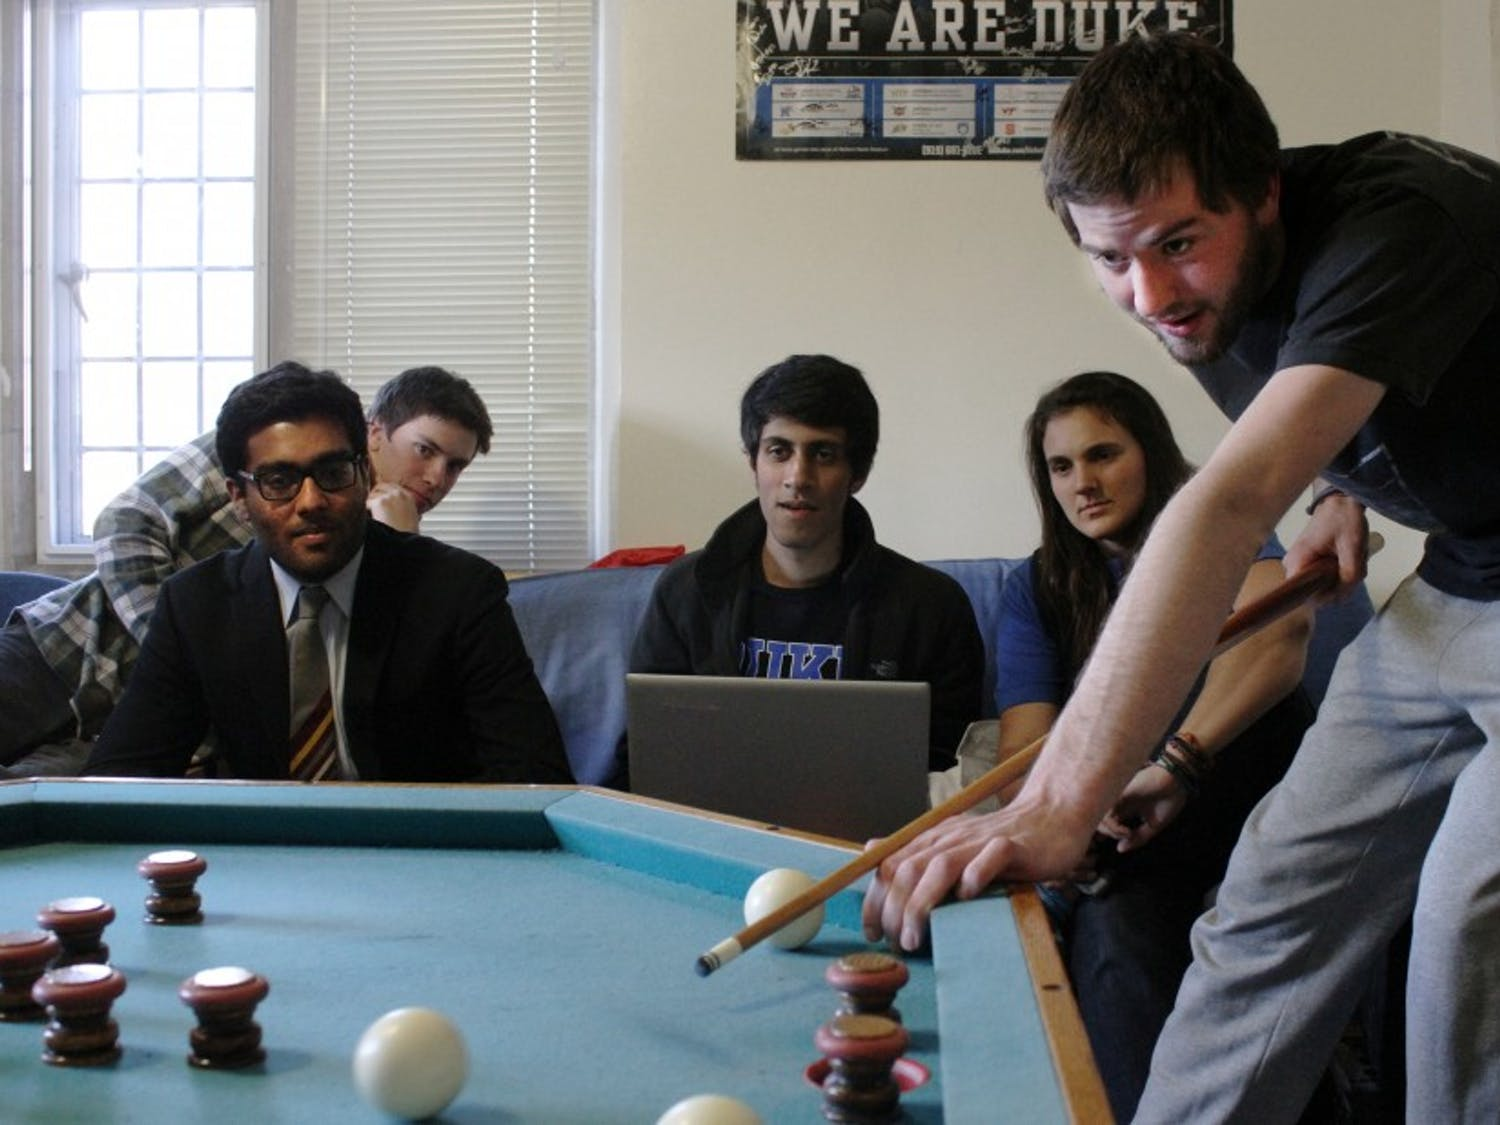 Tyler Glass shoots a bumper pool ball in his dorm room as spectators look on.